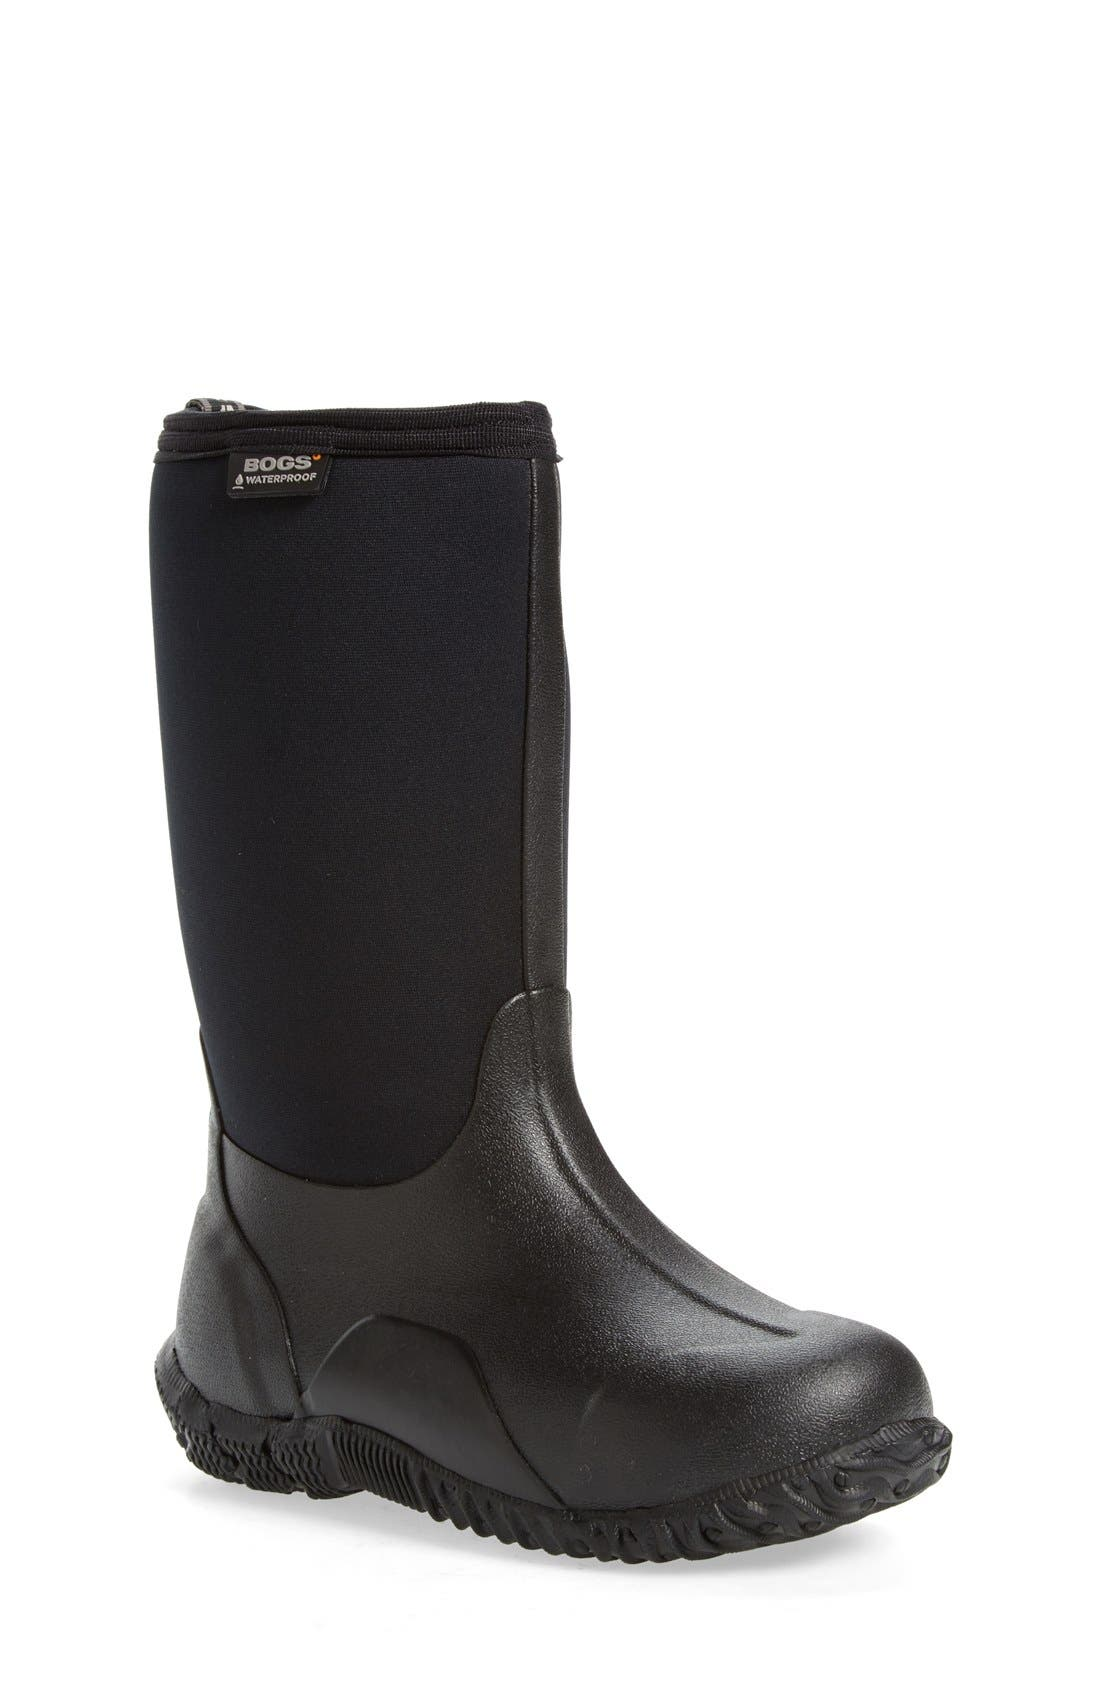 'Classic High' Waterproof Boot,                             Main thumbnail 1, color,                             001